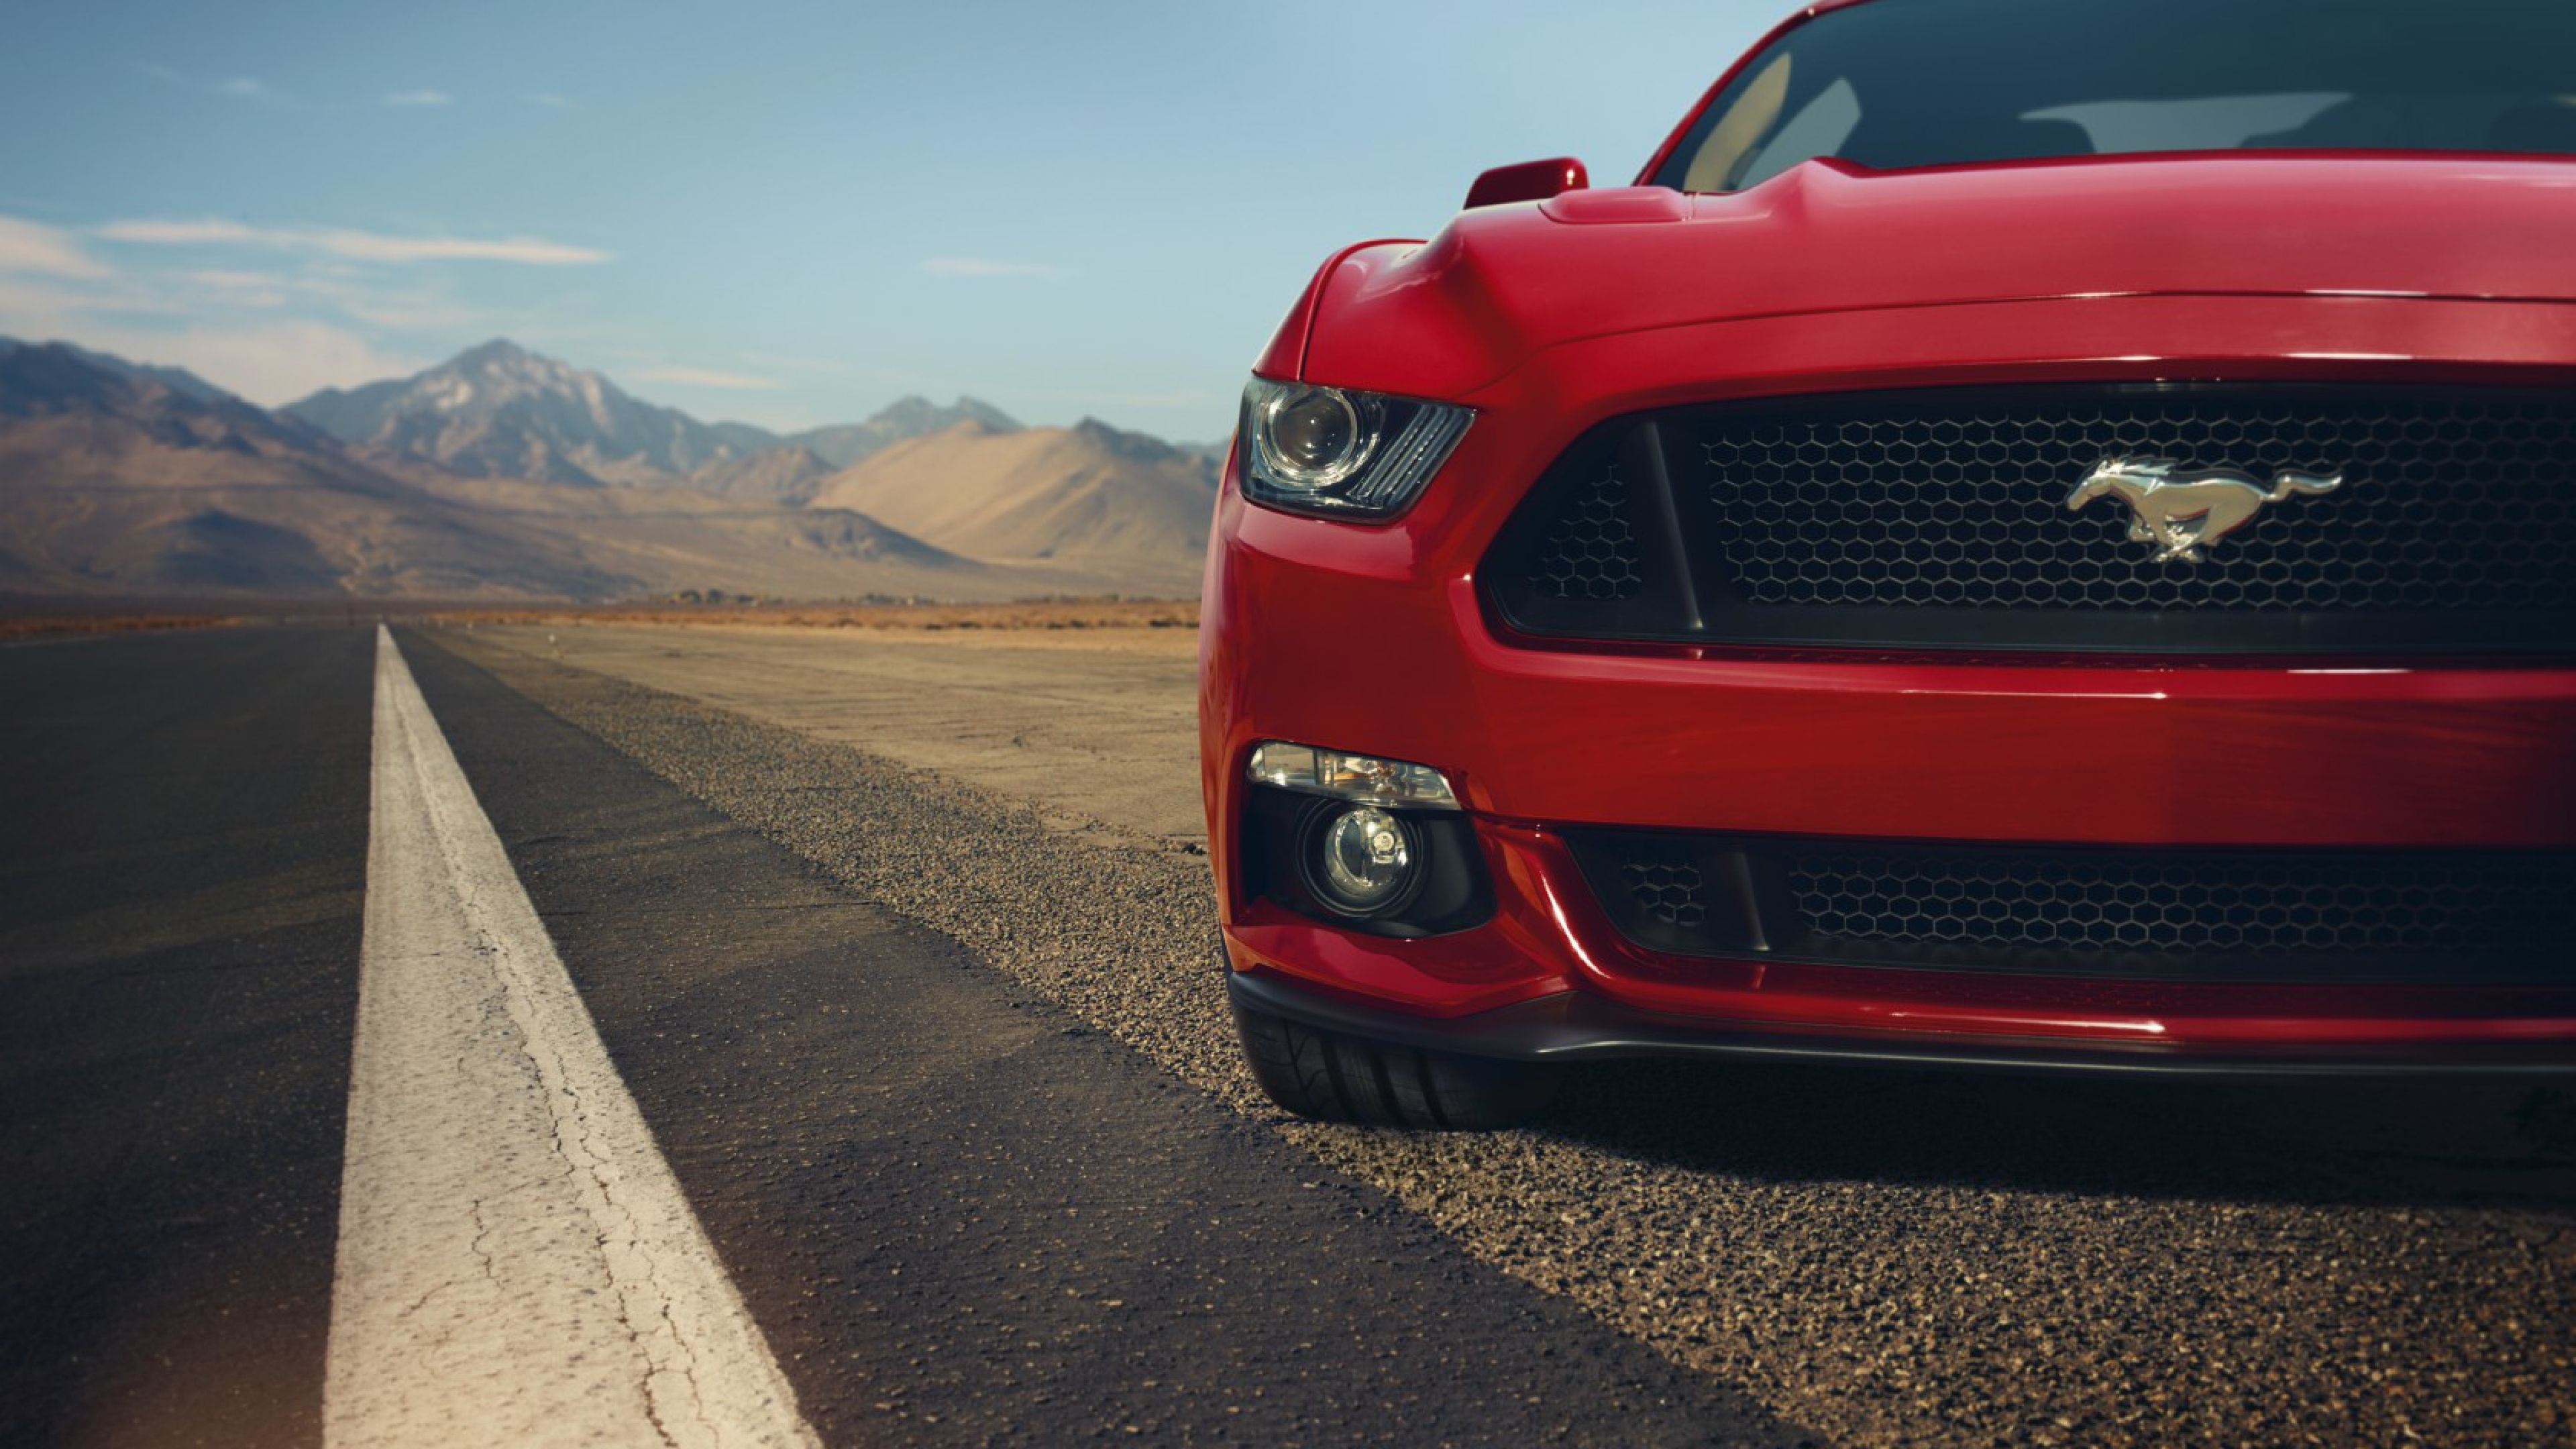 Beautiful Ford Mustang 4k Wallpapers รถยนต์